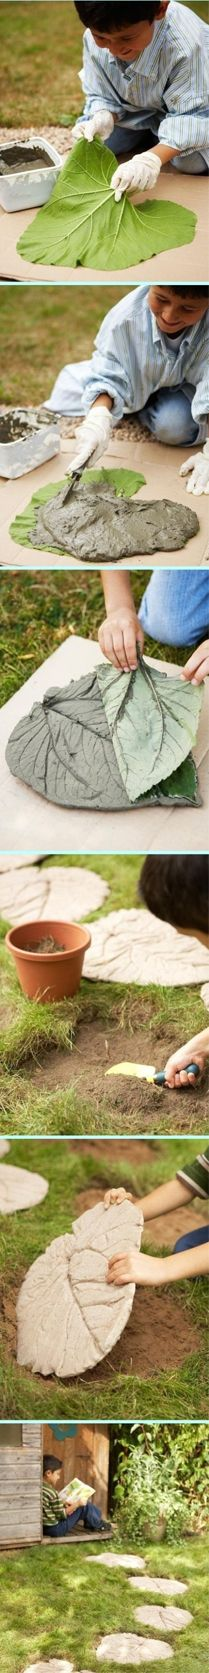 Leaf stepping stones, great outdoor project to do with kids!